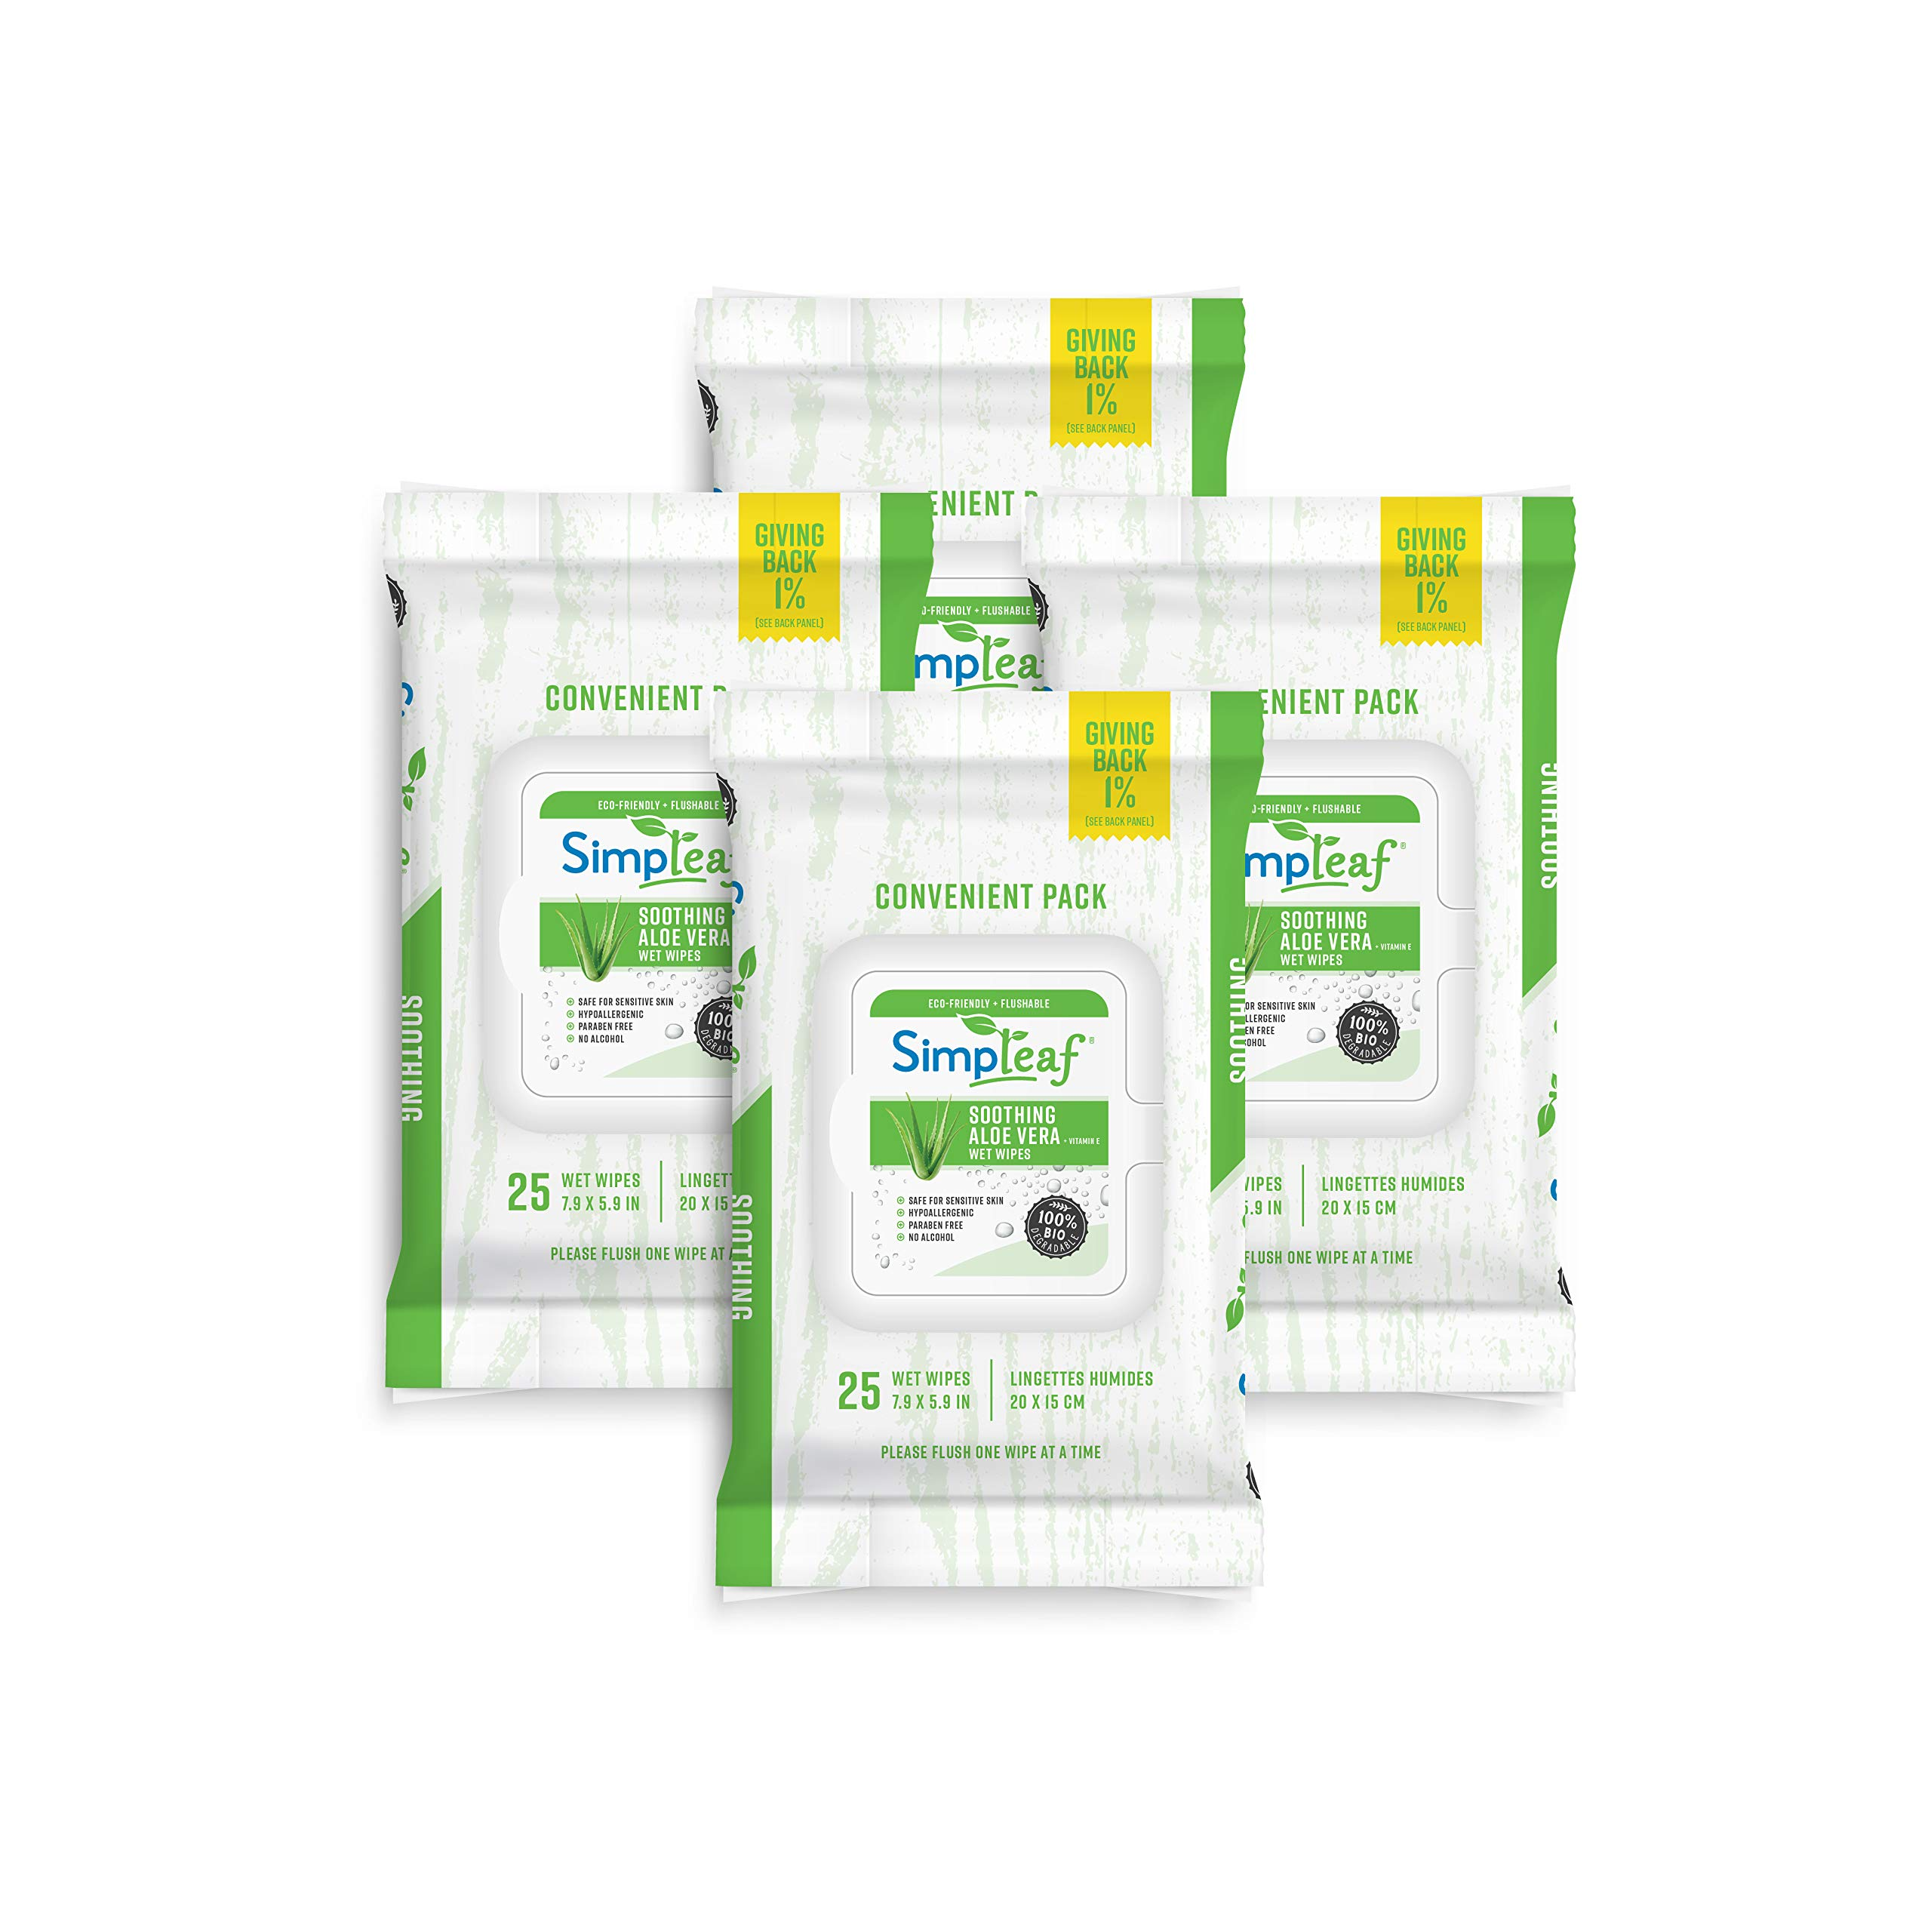 Simpleaf Flushable Wipes Aloe Vera (25 Counts) 4 packs